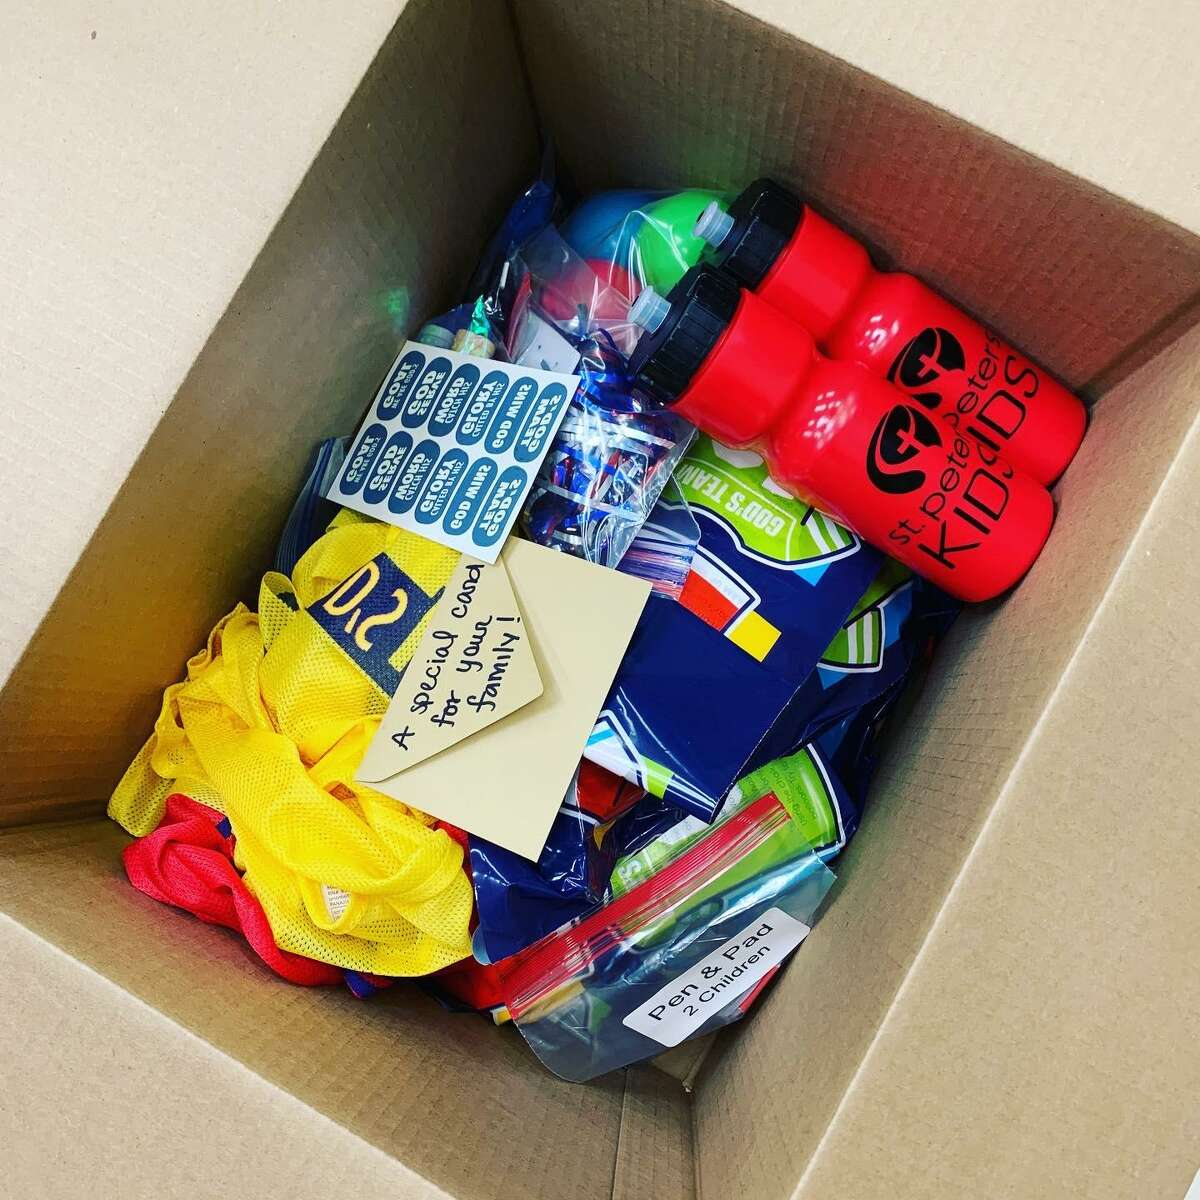 St. Peter's United Methodist Church in Katy has been distributing boxes like this one this summer for children during the pandemic in lieu of traditional camps. They are filled with a variety of activities and goodies to have fun and learn.